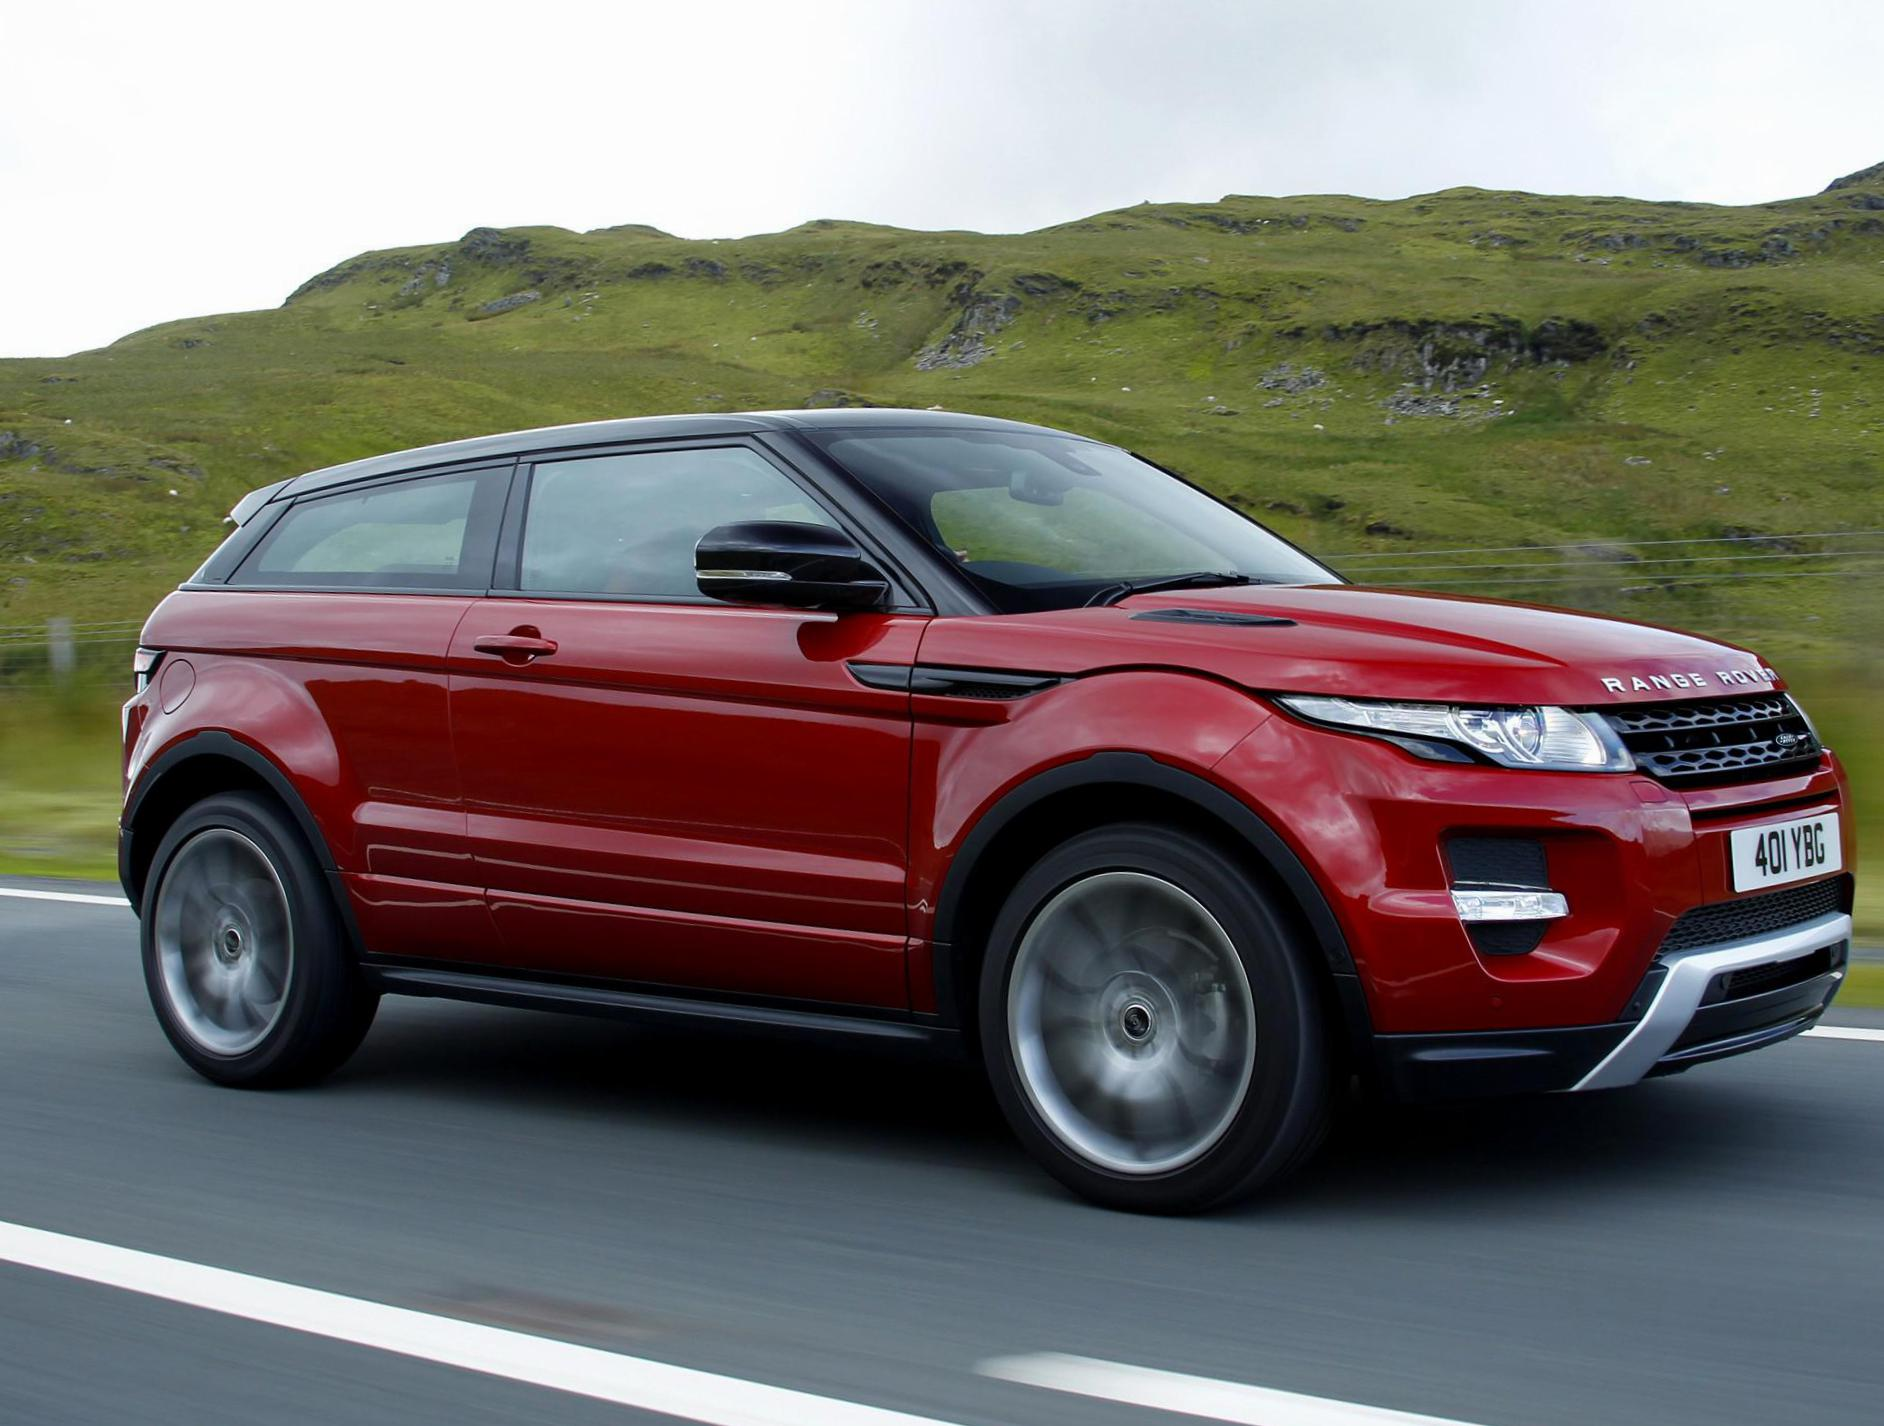 Land Rover Range Rover Evoque Coupe spec 2015